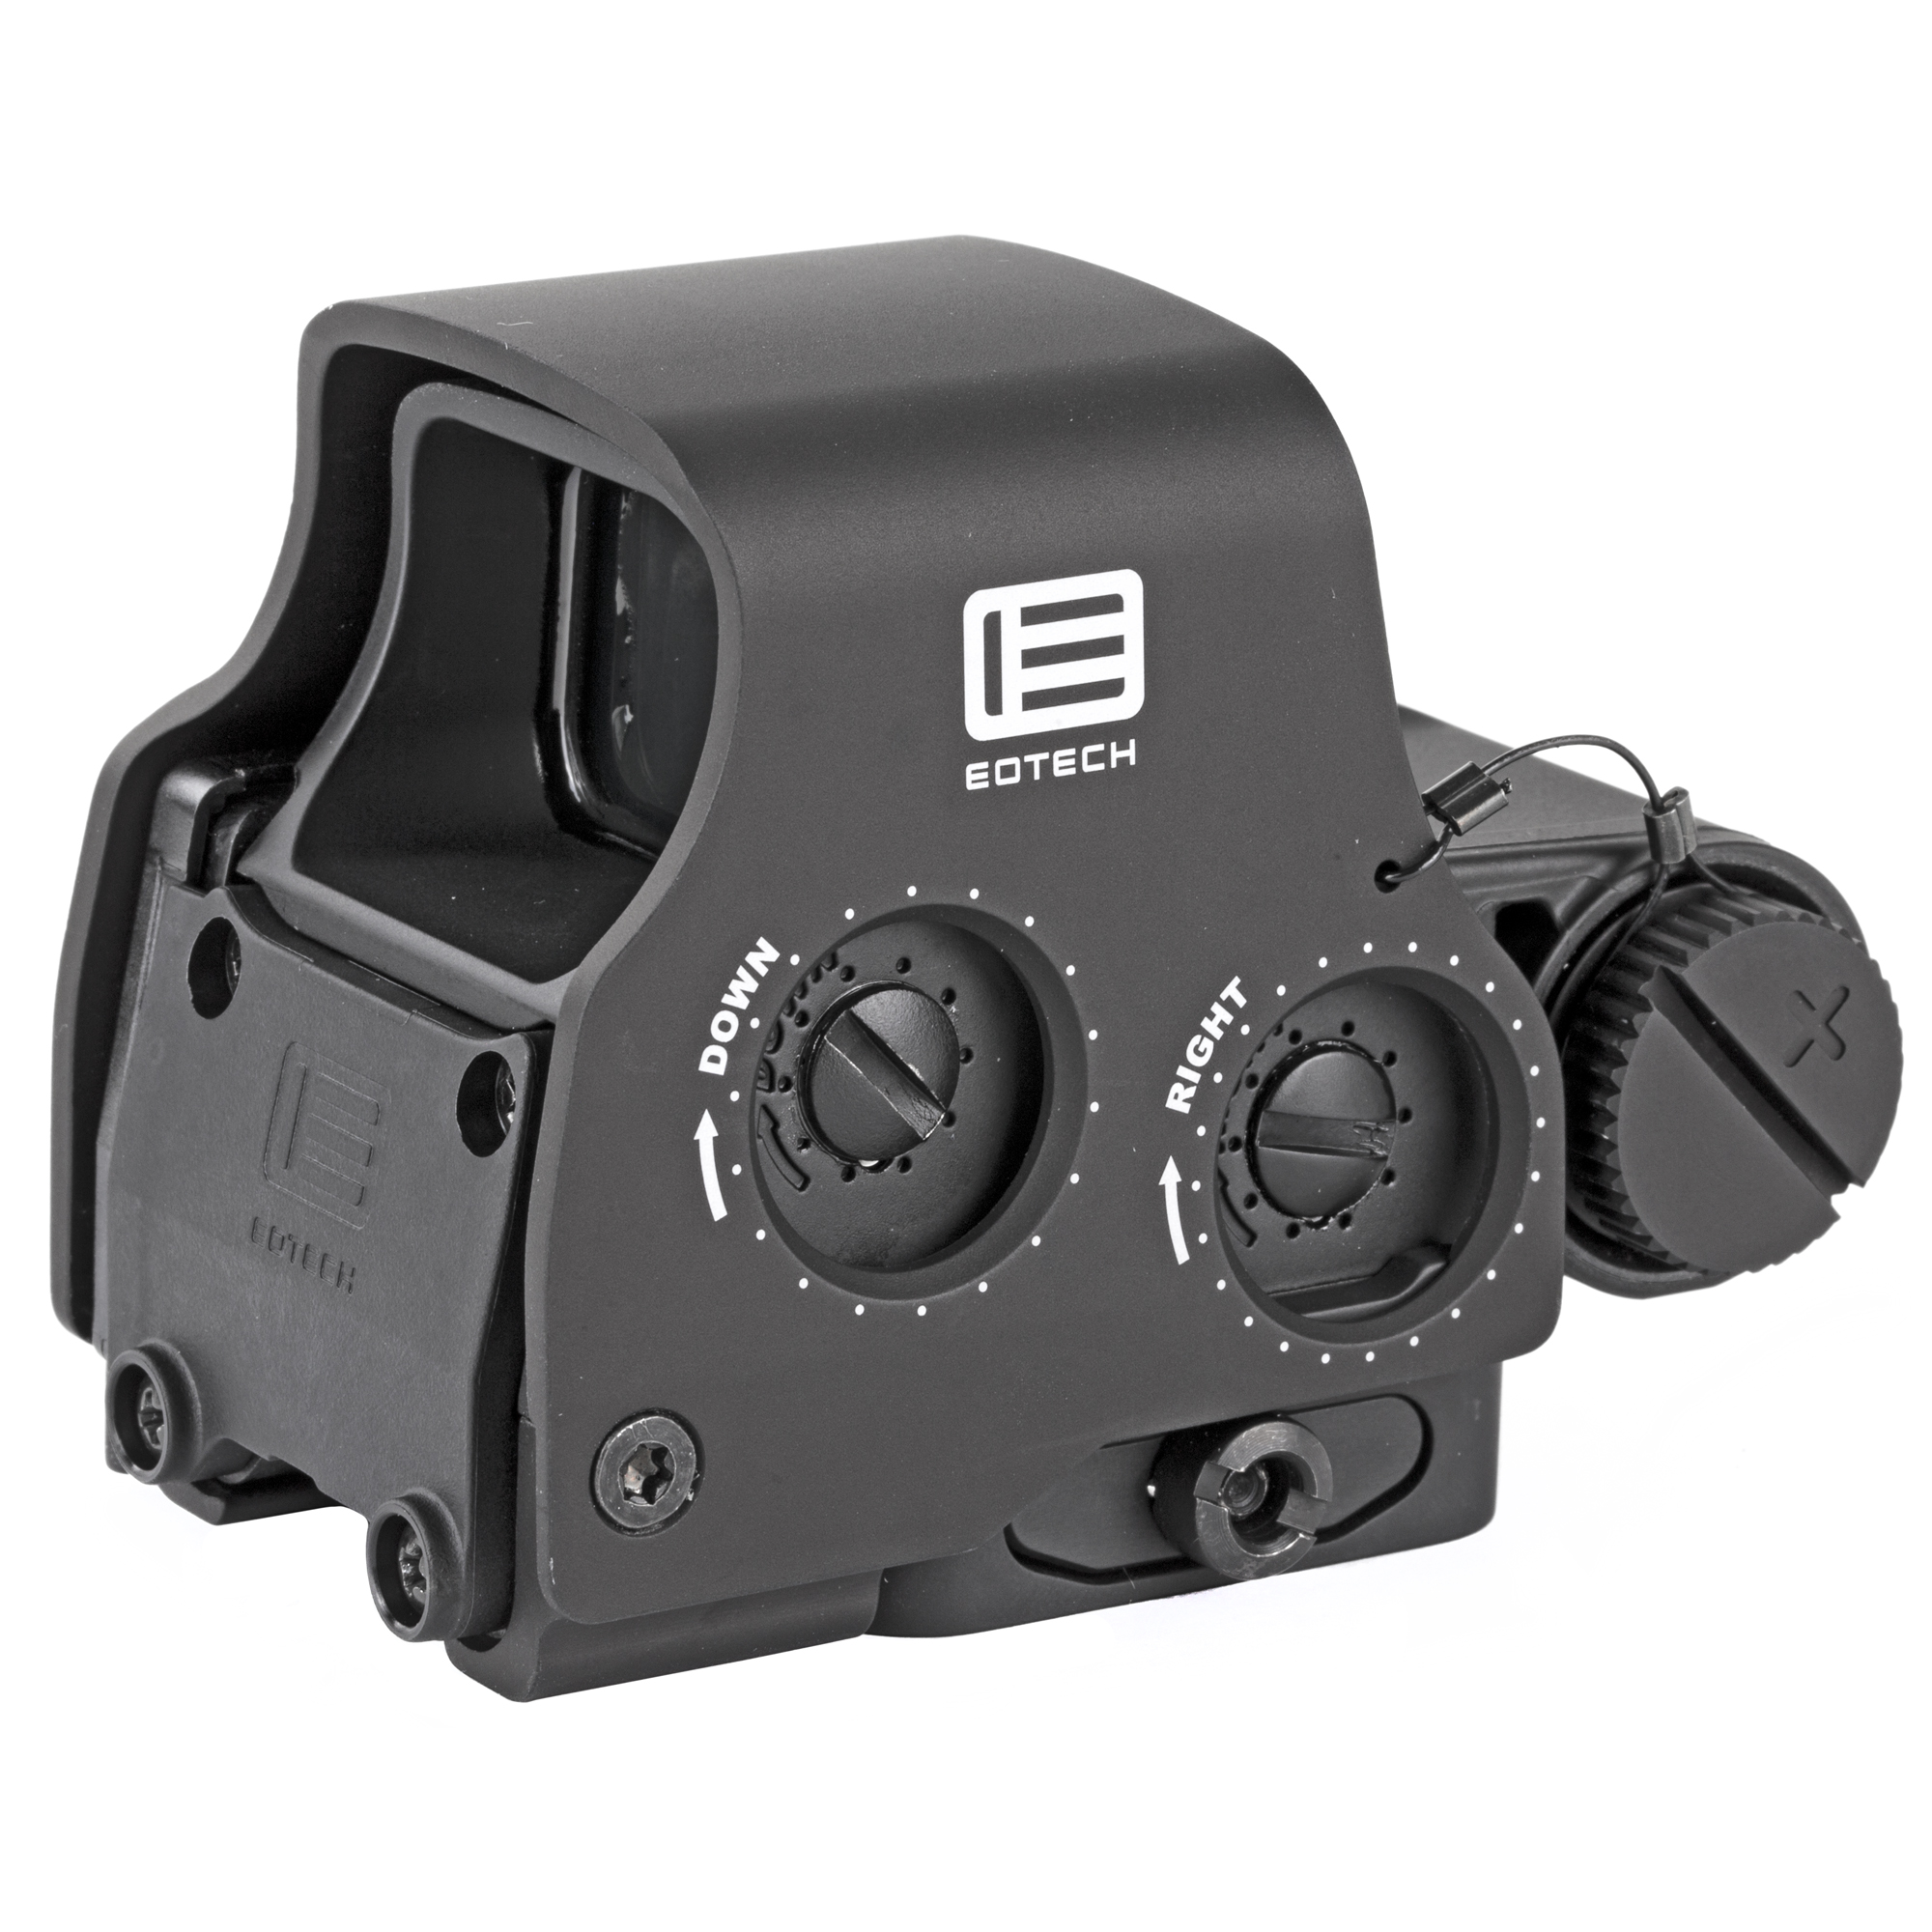 "Achieve faster target acquisition with the new easy-to-see Green reticle that is approximately 6X easier to see than red in daytime. The EXPS2-GRN also maximizes rail space with its compact size and allows for co-witnessing of iron sights. It has convenient side buttons to add a magnifier and features an adjustable"" locking"" quick-detach lever for easy attachment and removal."